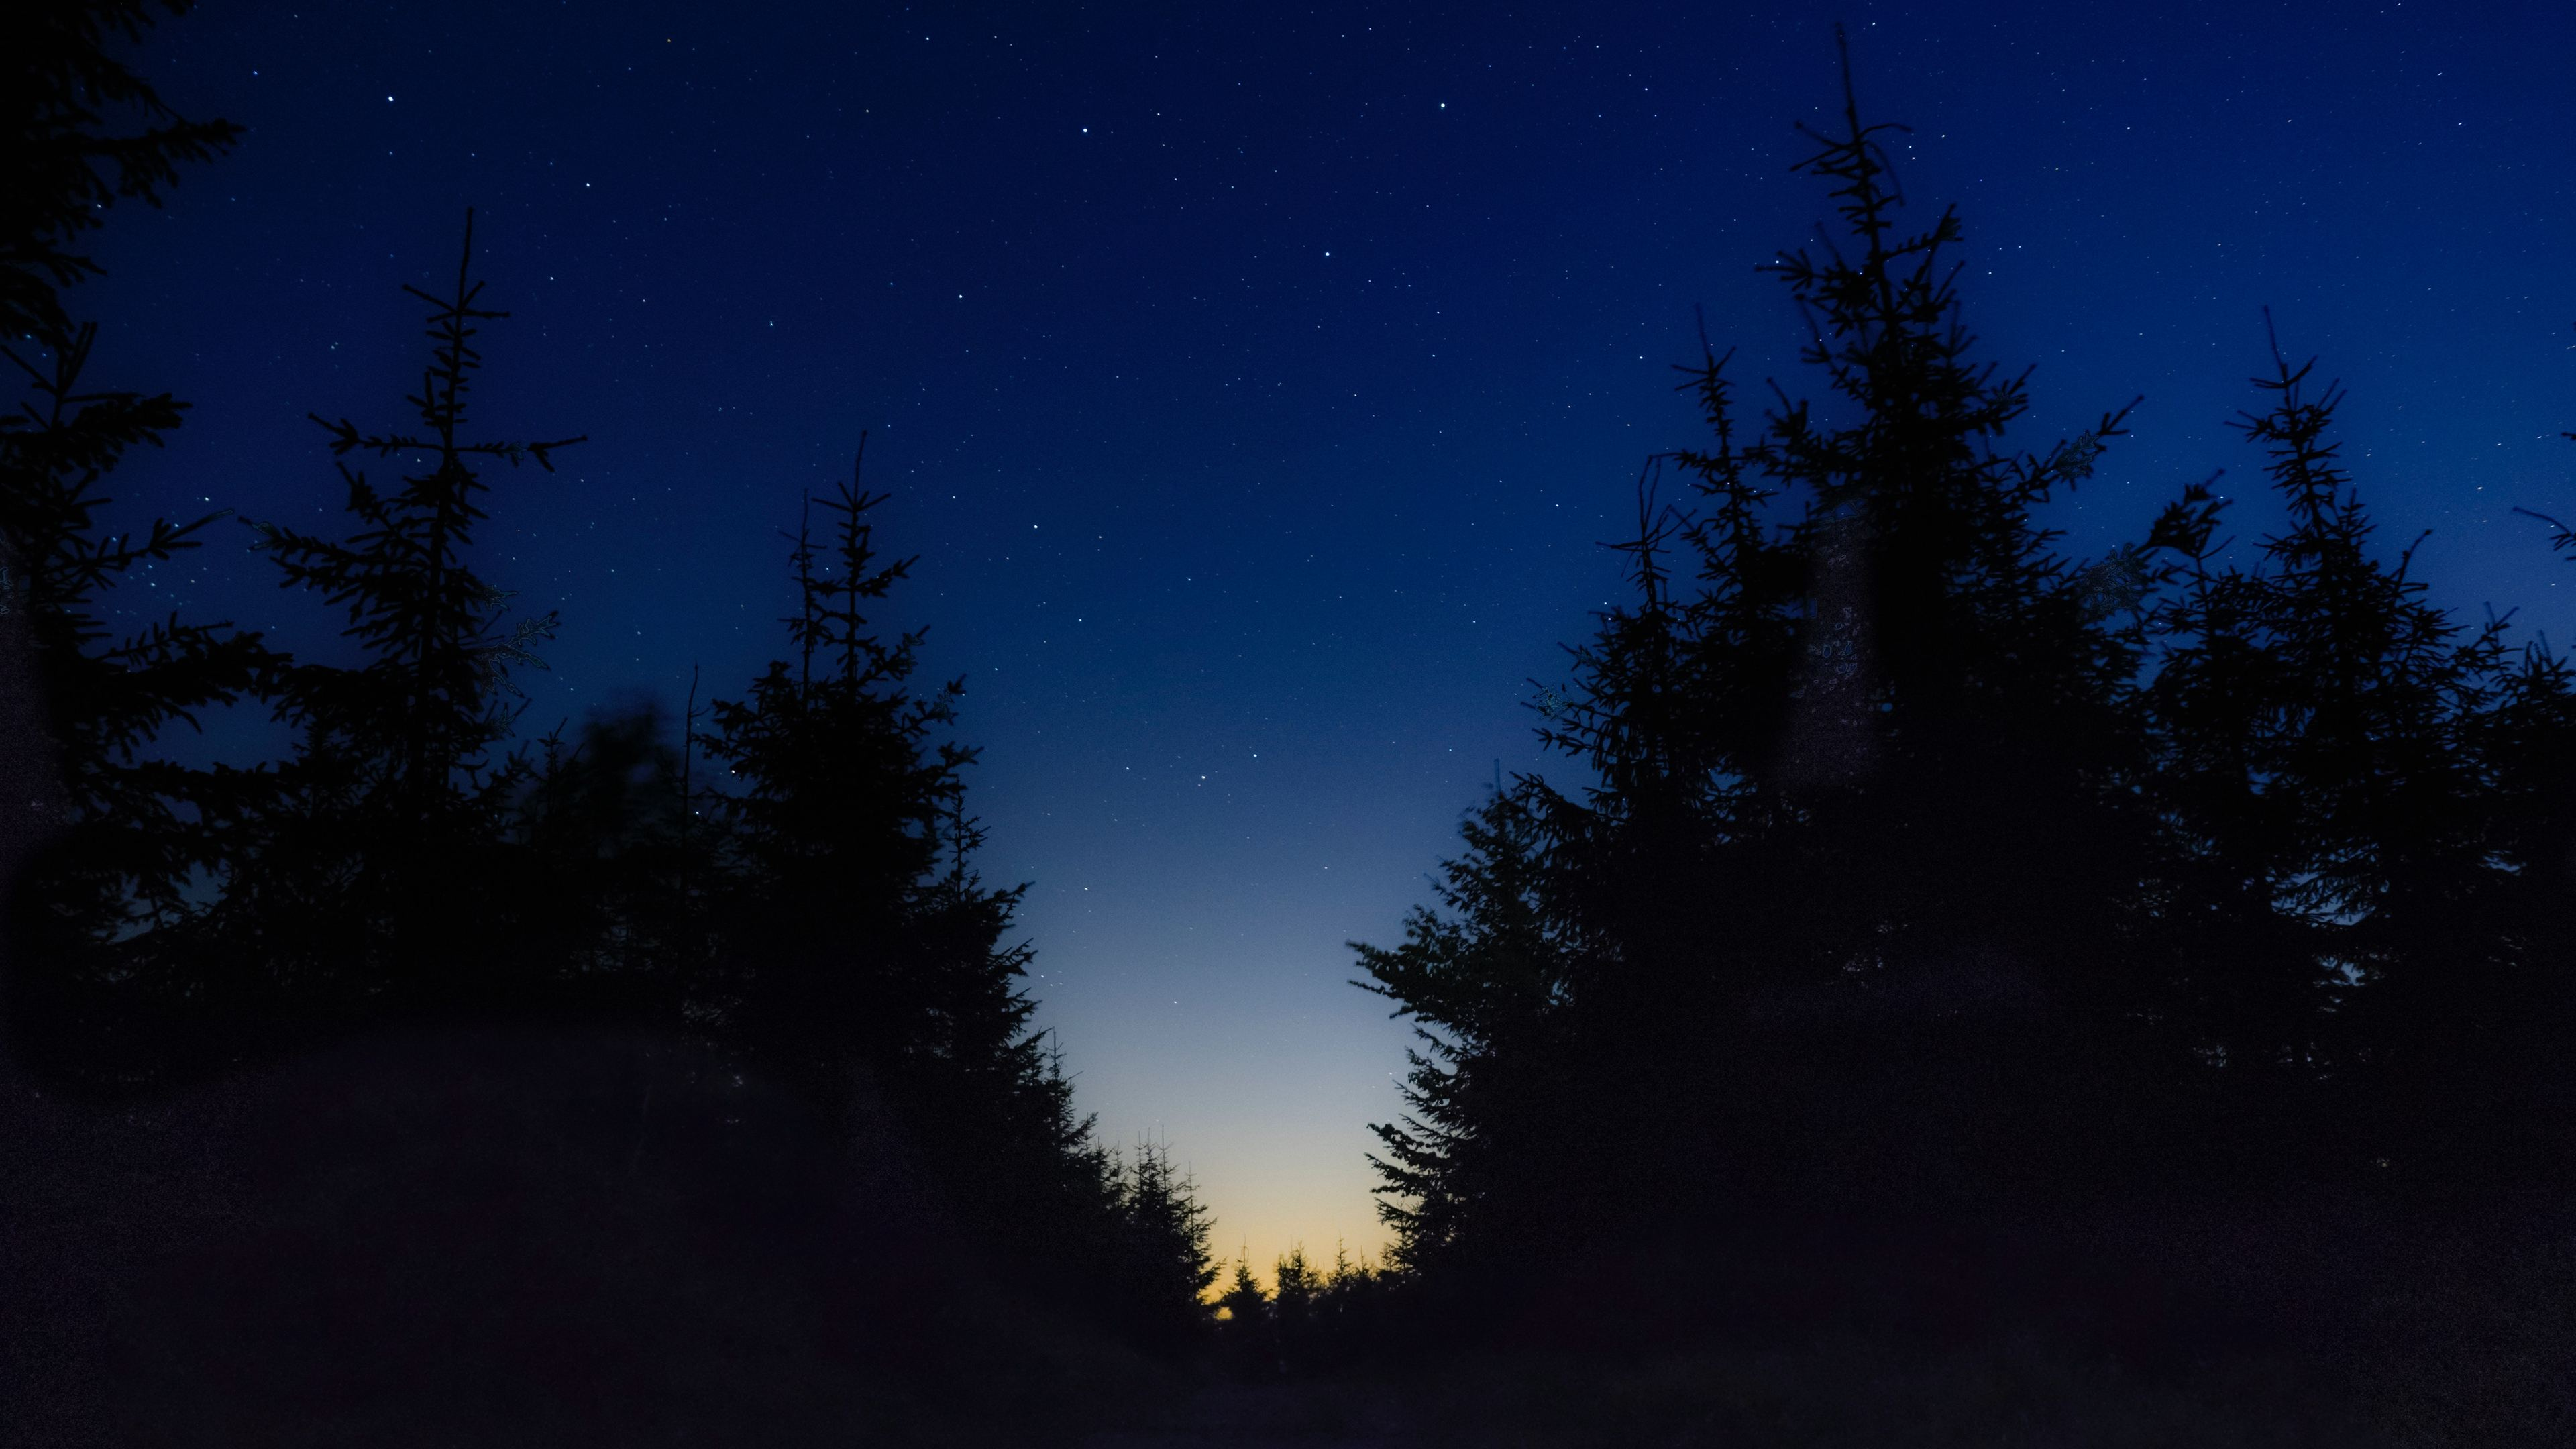 Wallpaper 4k Nice View Between Forest Trees At Evening Sky